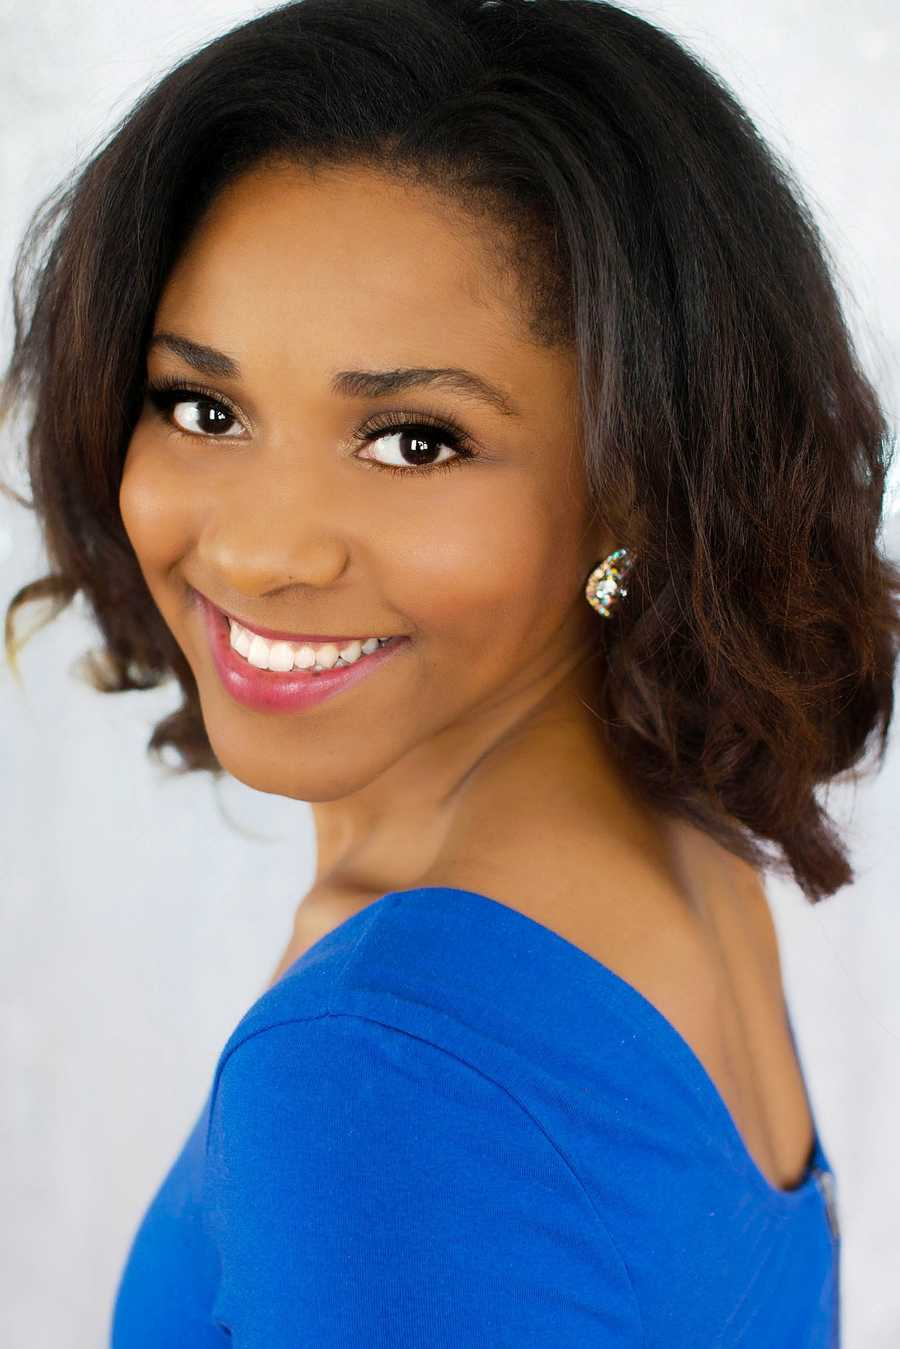 Fourth runner up: Charlena Kennedy of Foxborough, competing as Miss Plymouth County